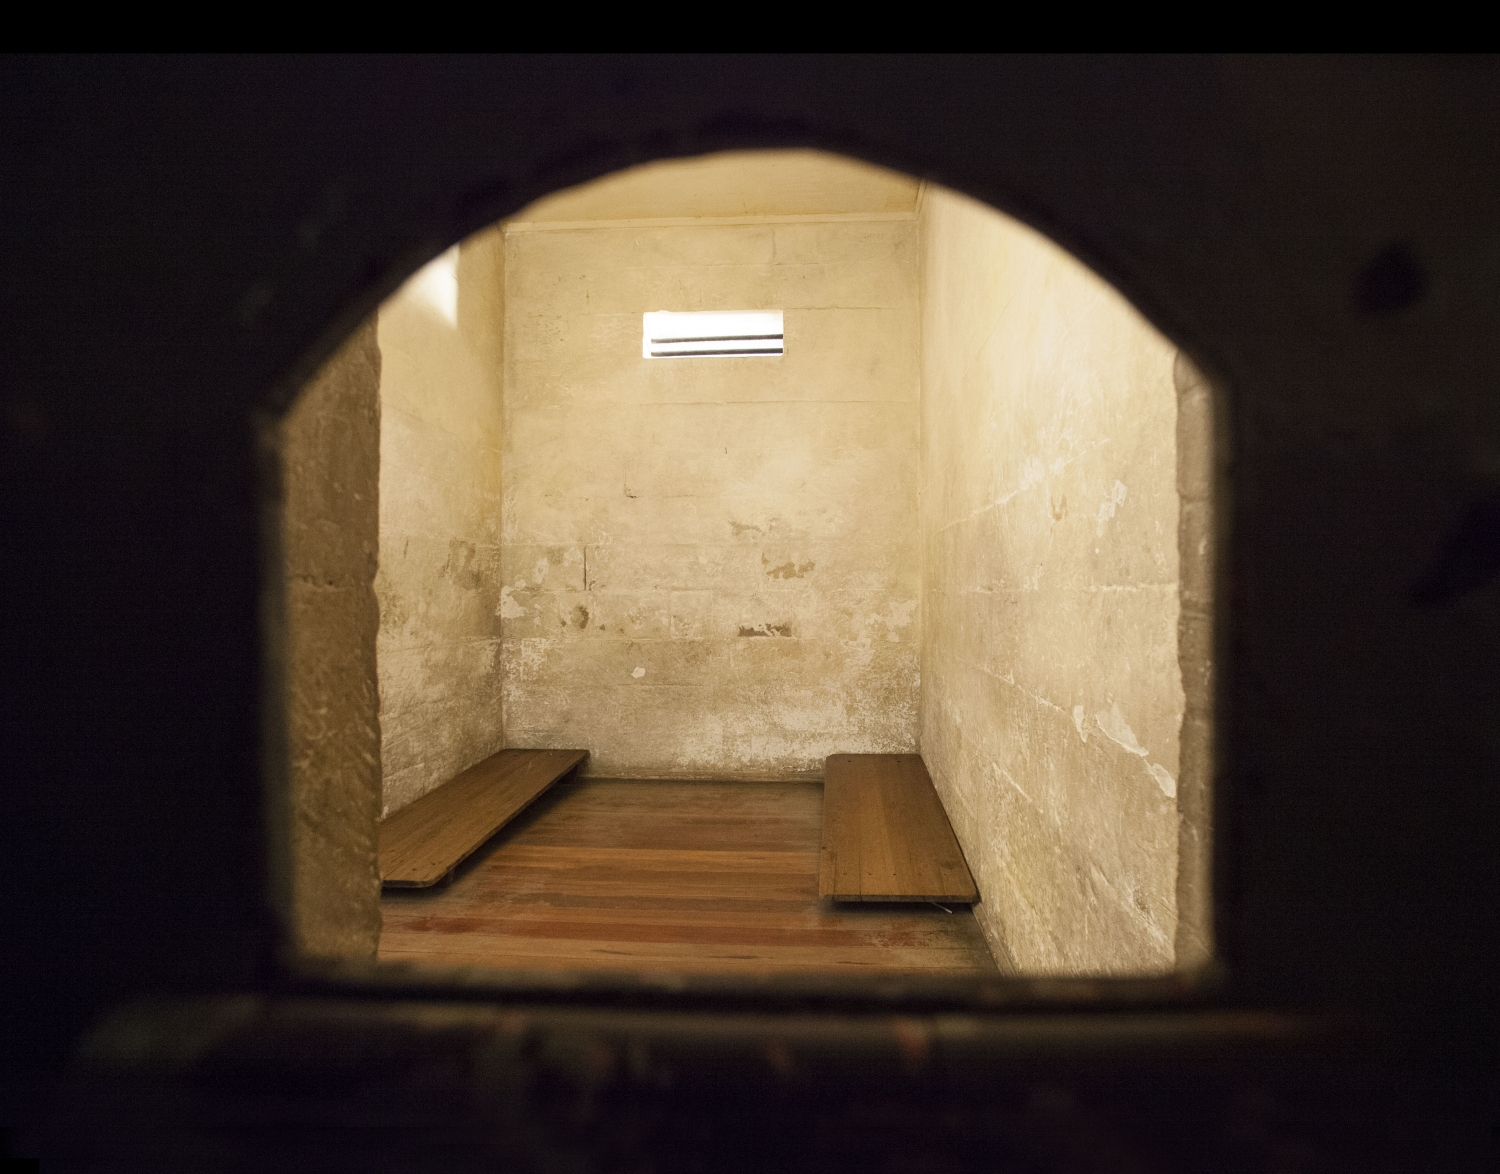 View through door hatch into stark holding cells at the Justice and Police Museum, showing 2 timber platform beds.